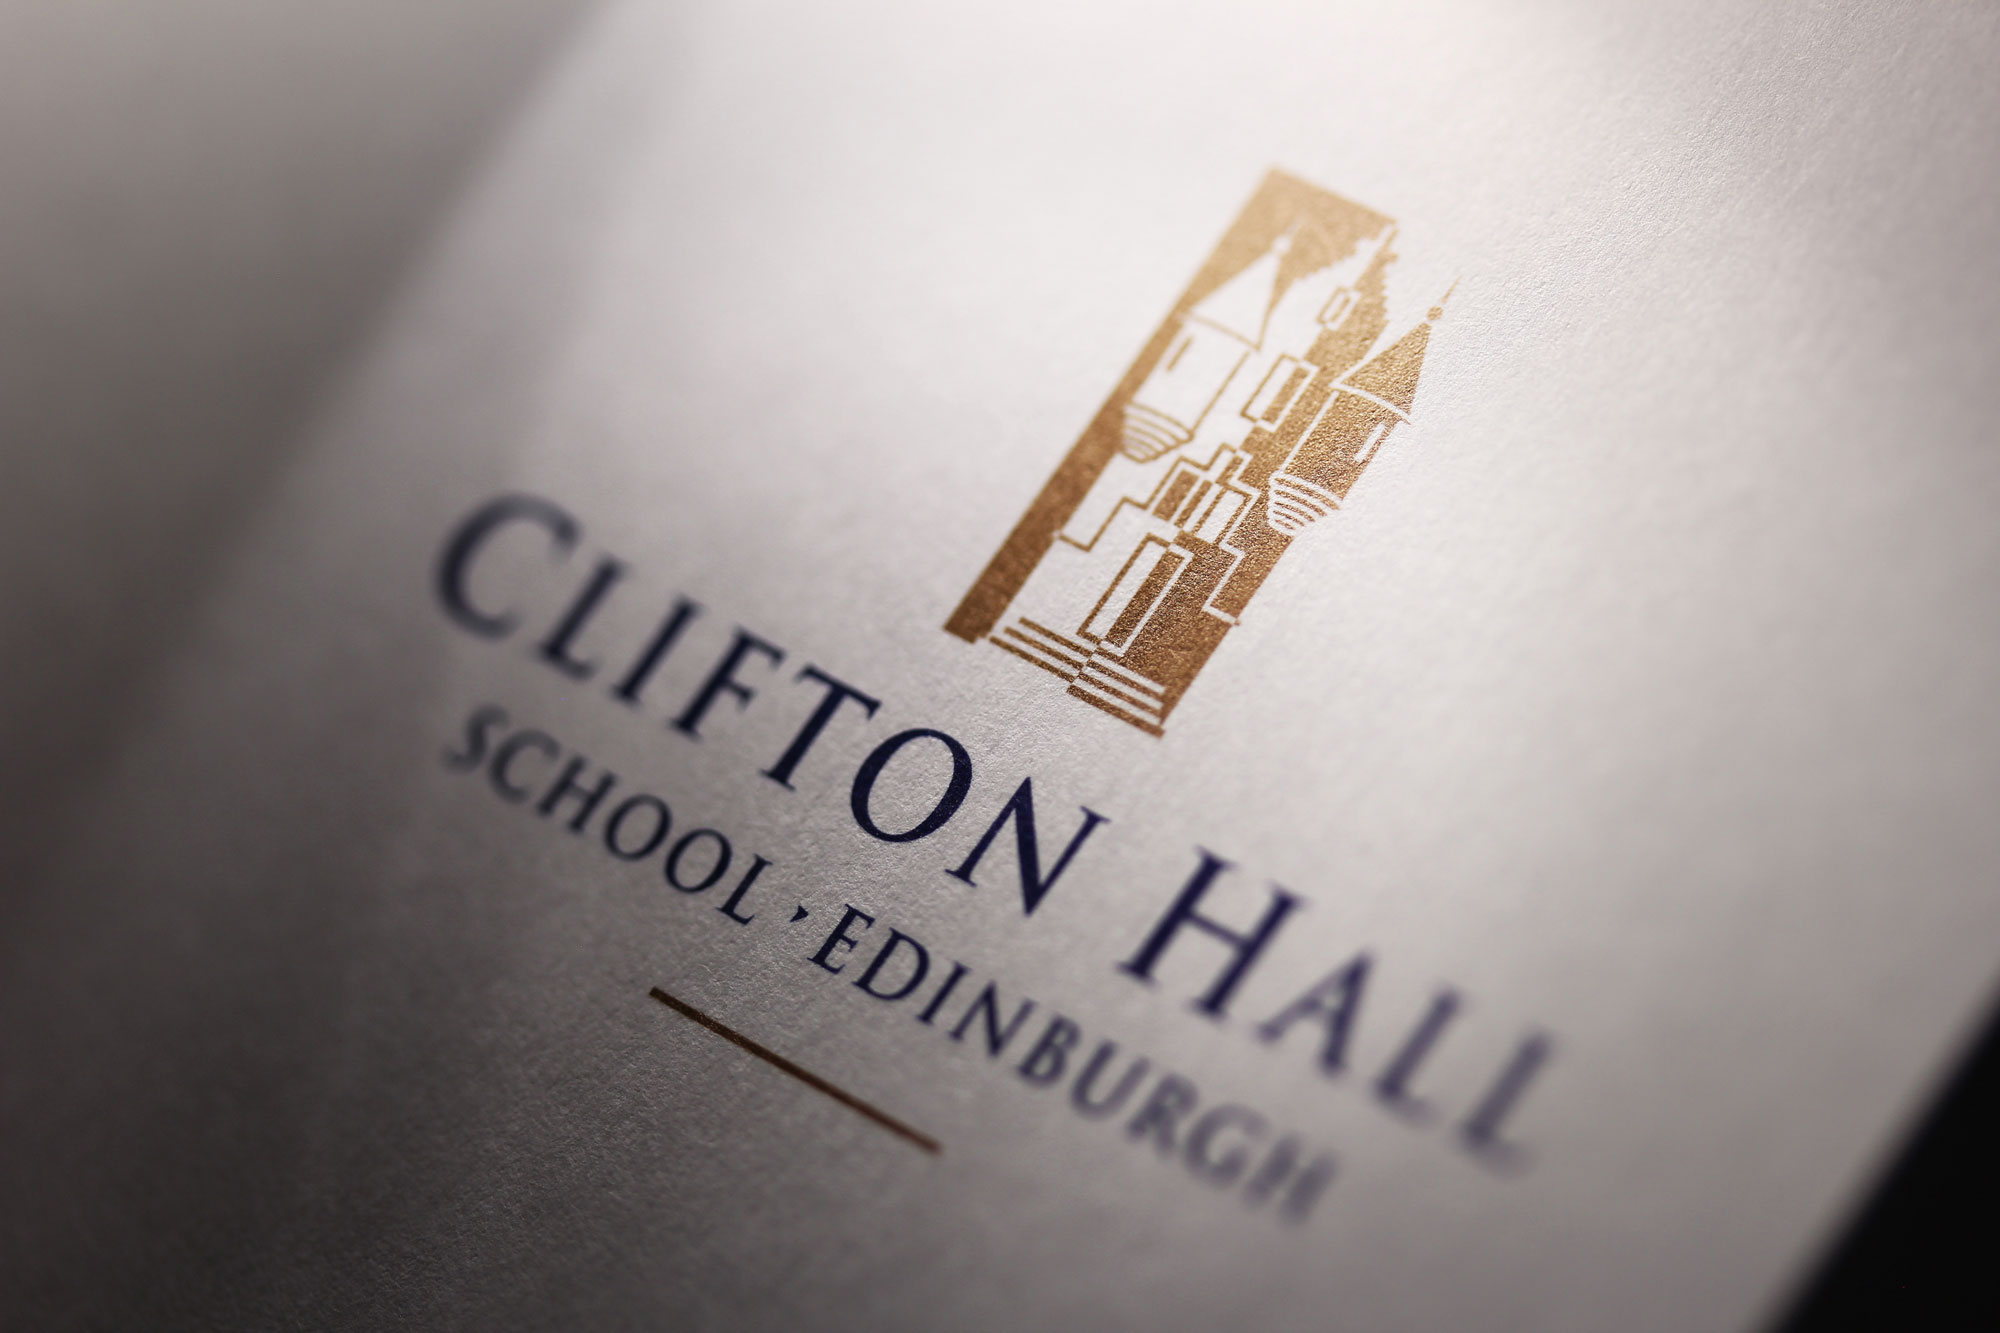 03_CliftonHall_HR